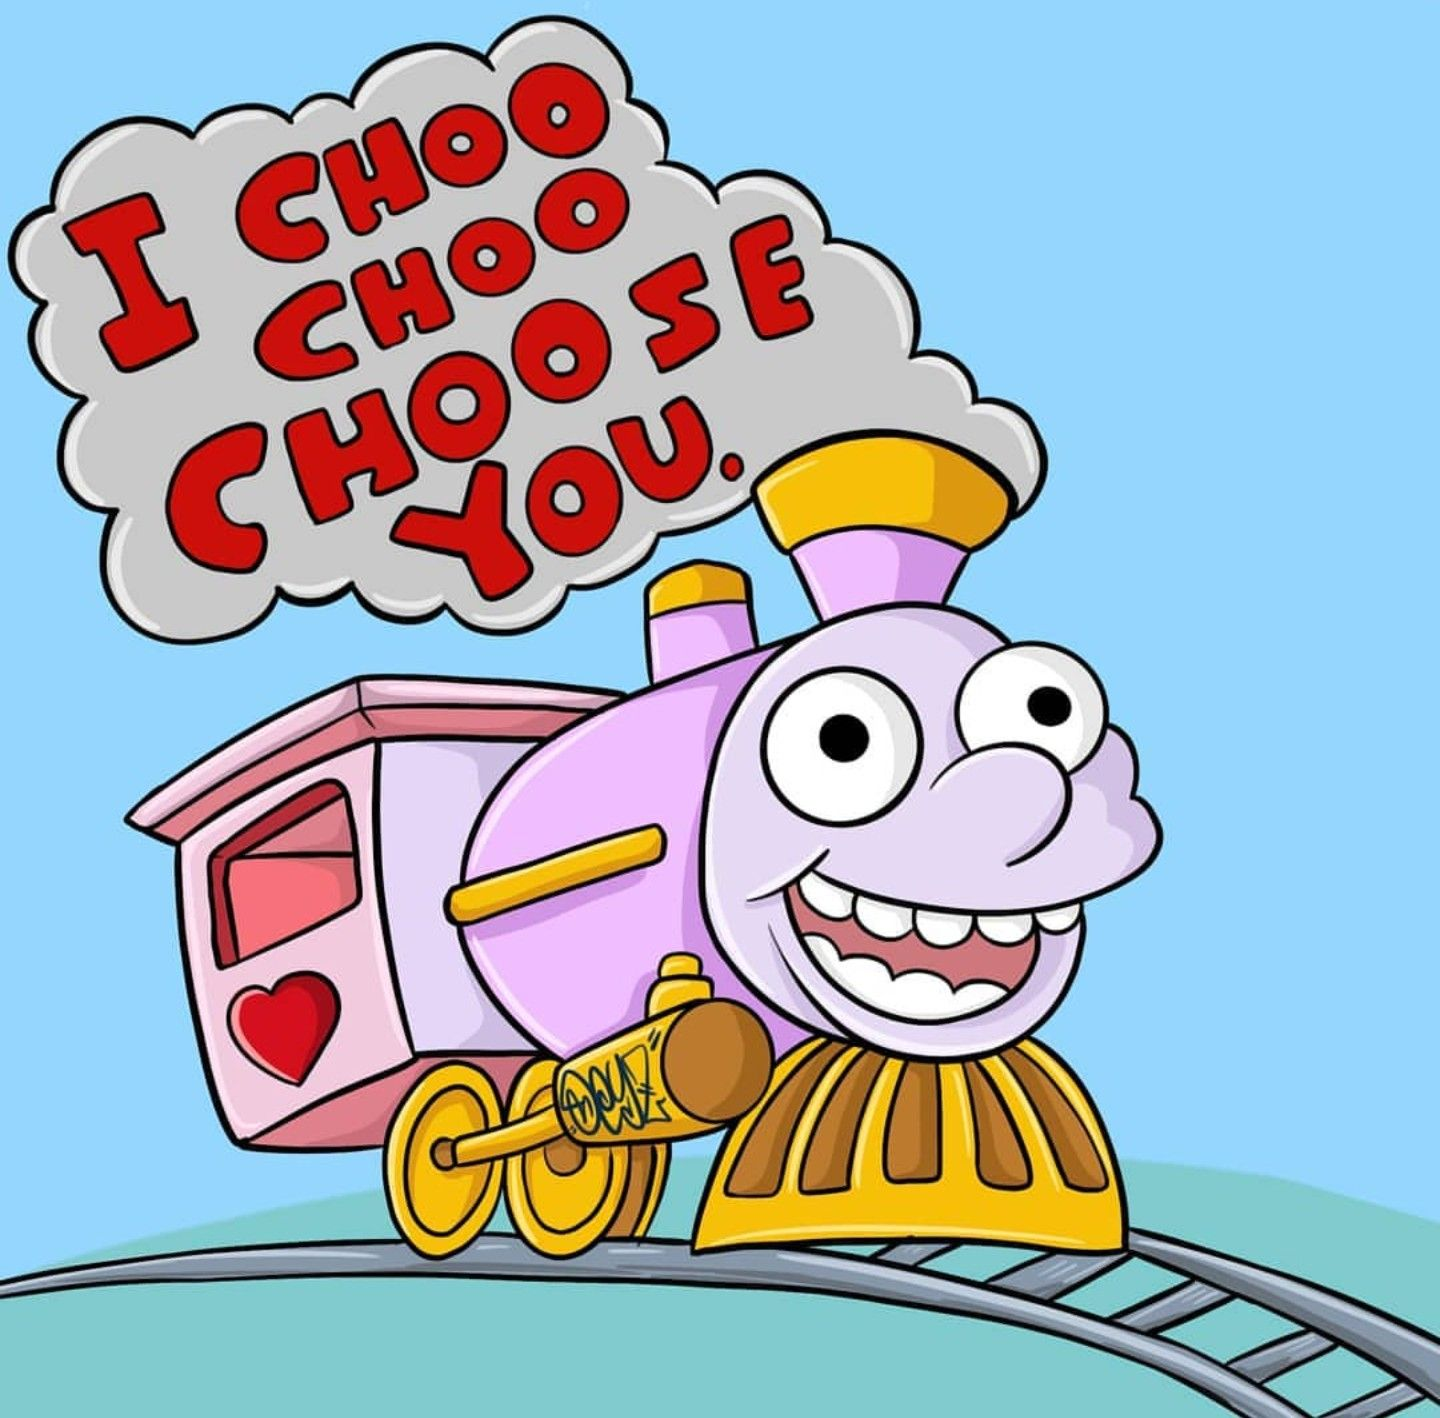 Ralph Wiggum I Choo Choo Choose You The Simpsons Los Simpsons Fondo De Pantalla Colorido Dibujos